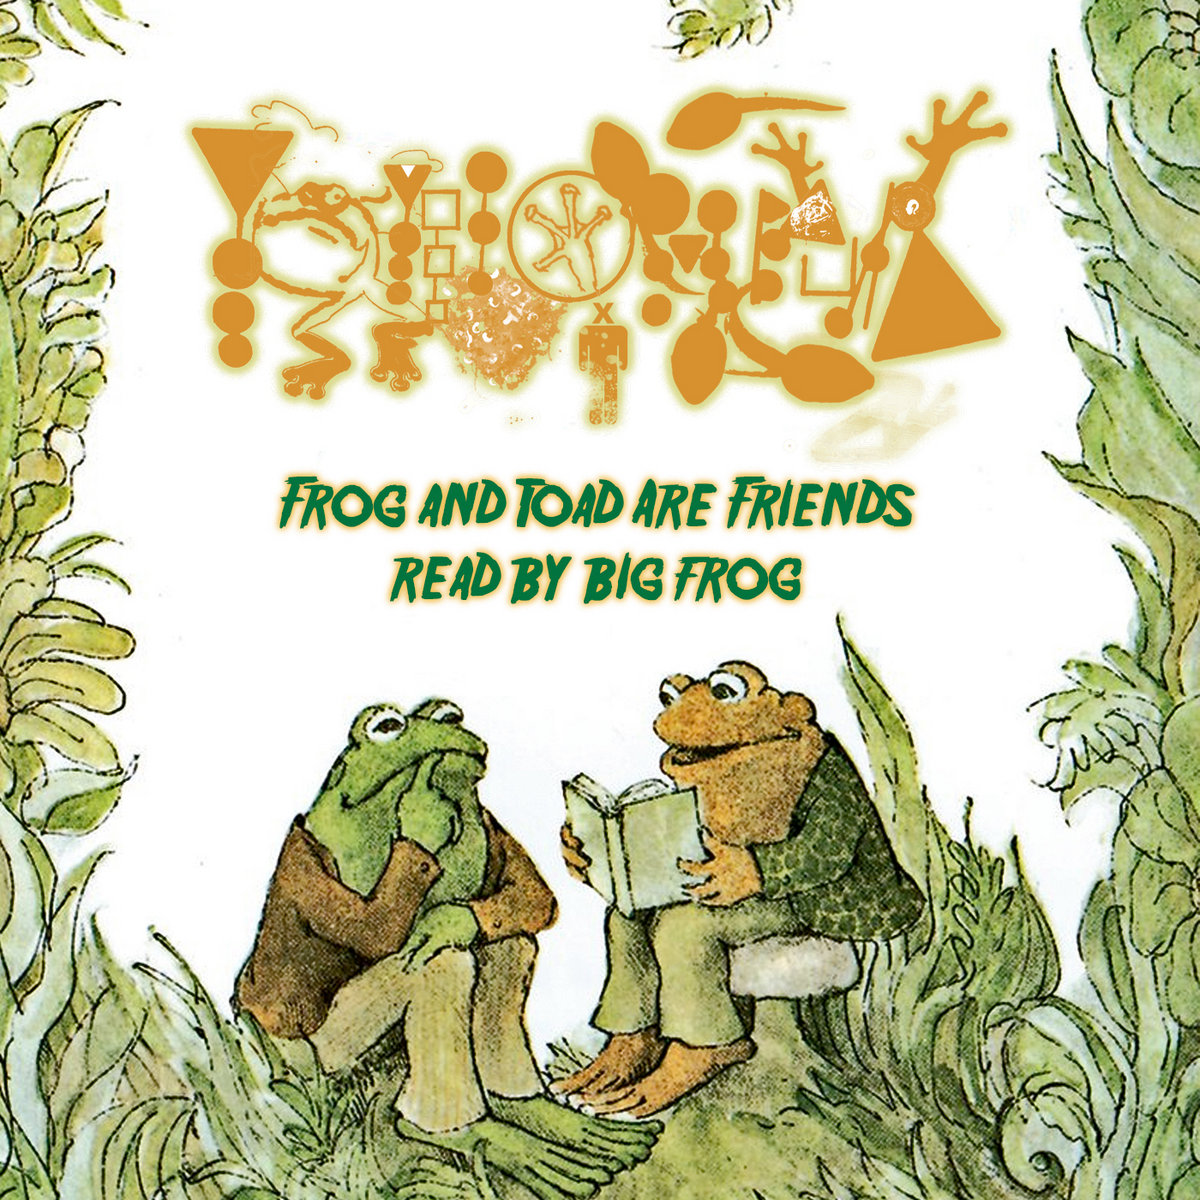 Frog And Toad Are Friends Read By Big Frog